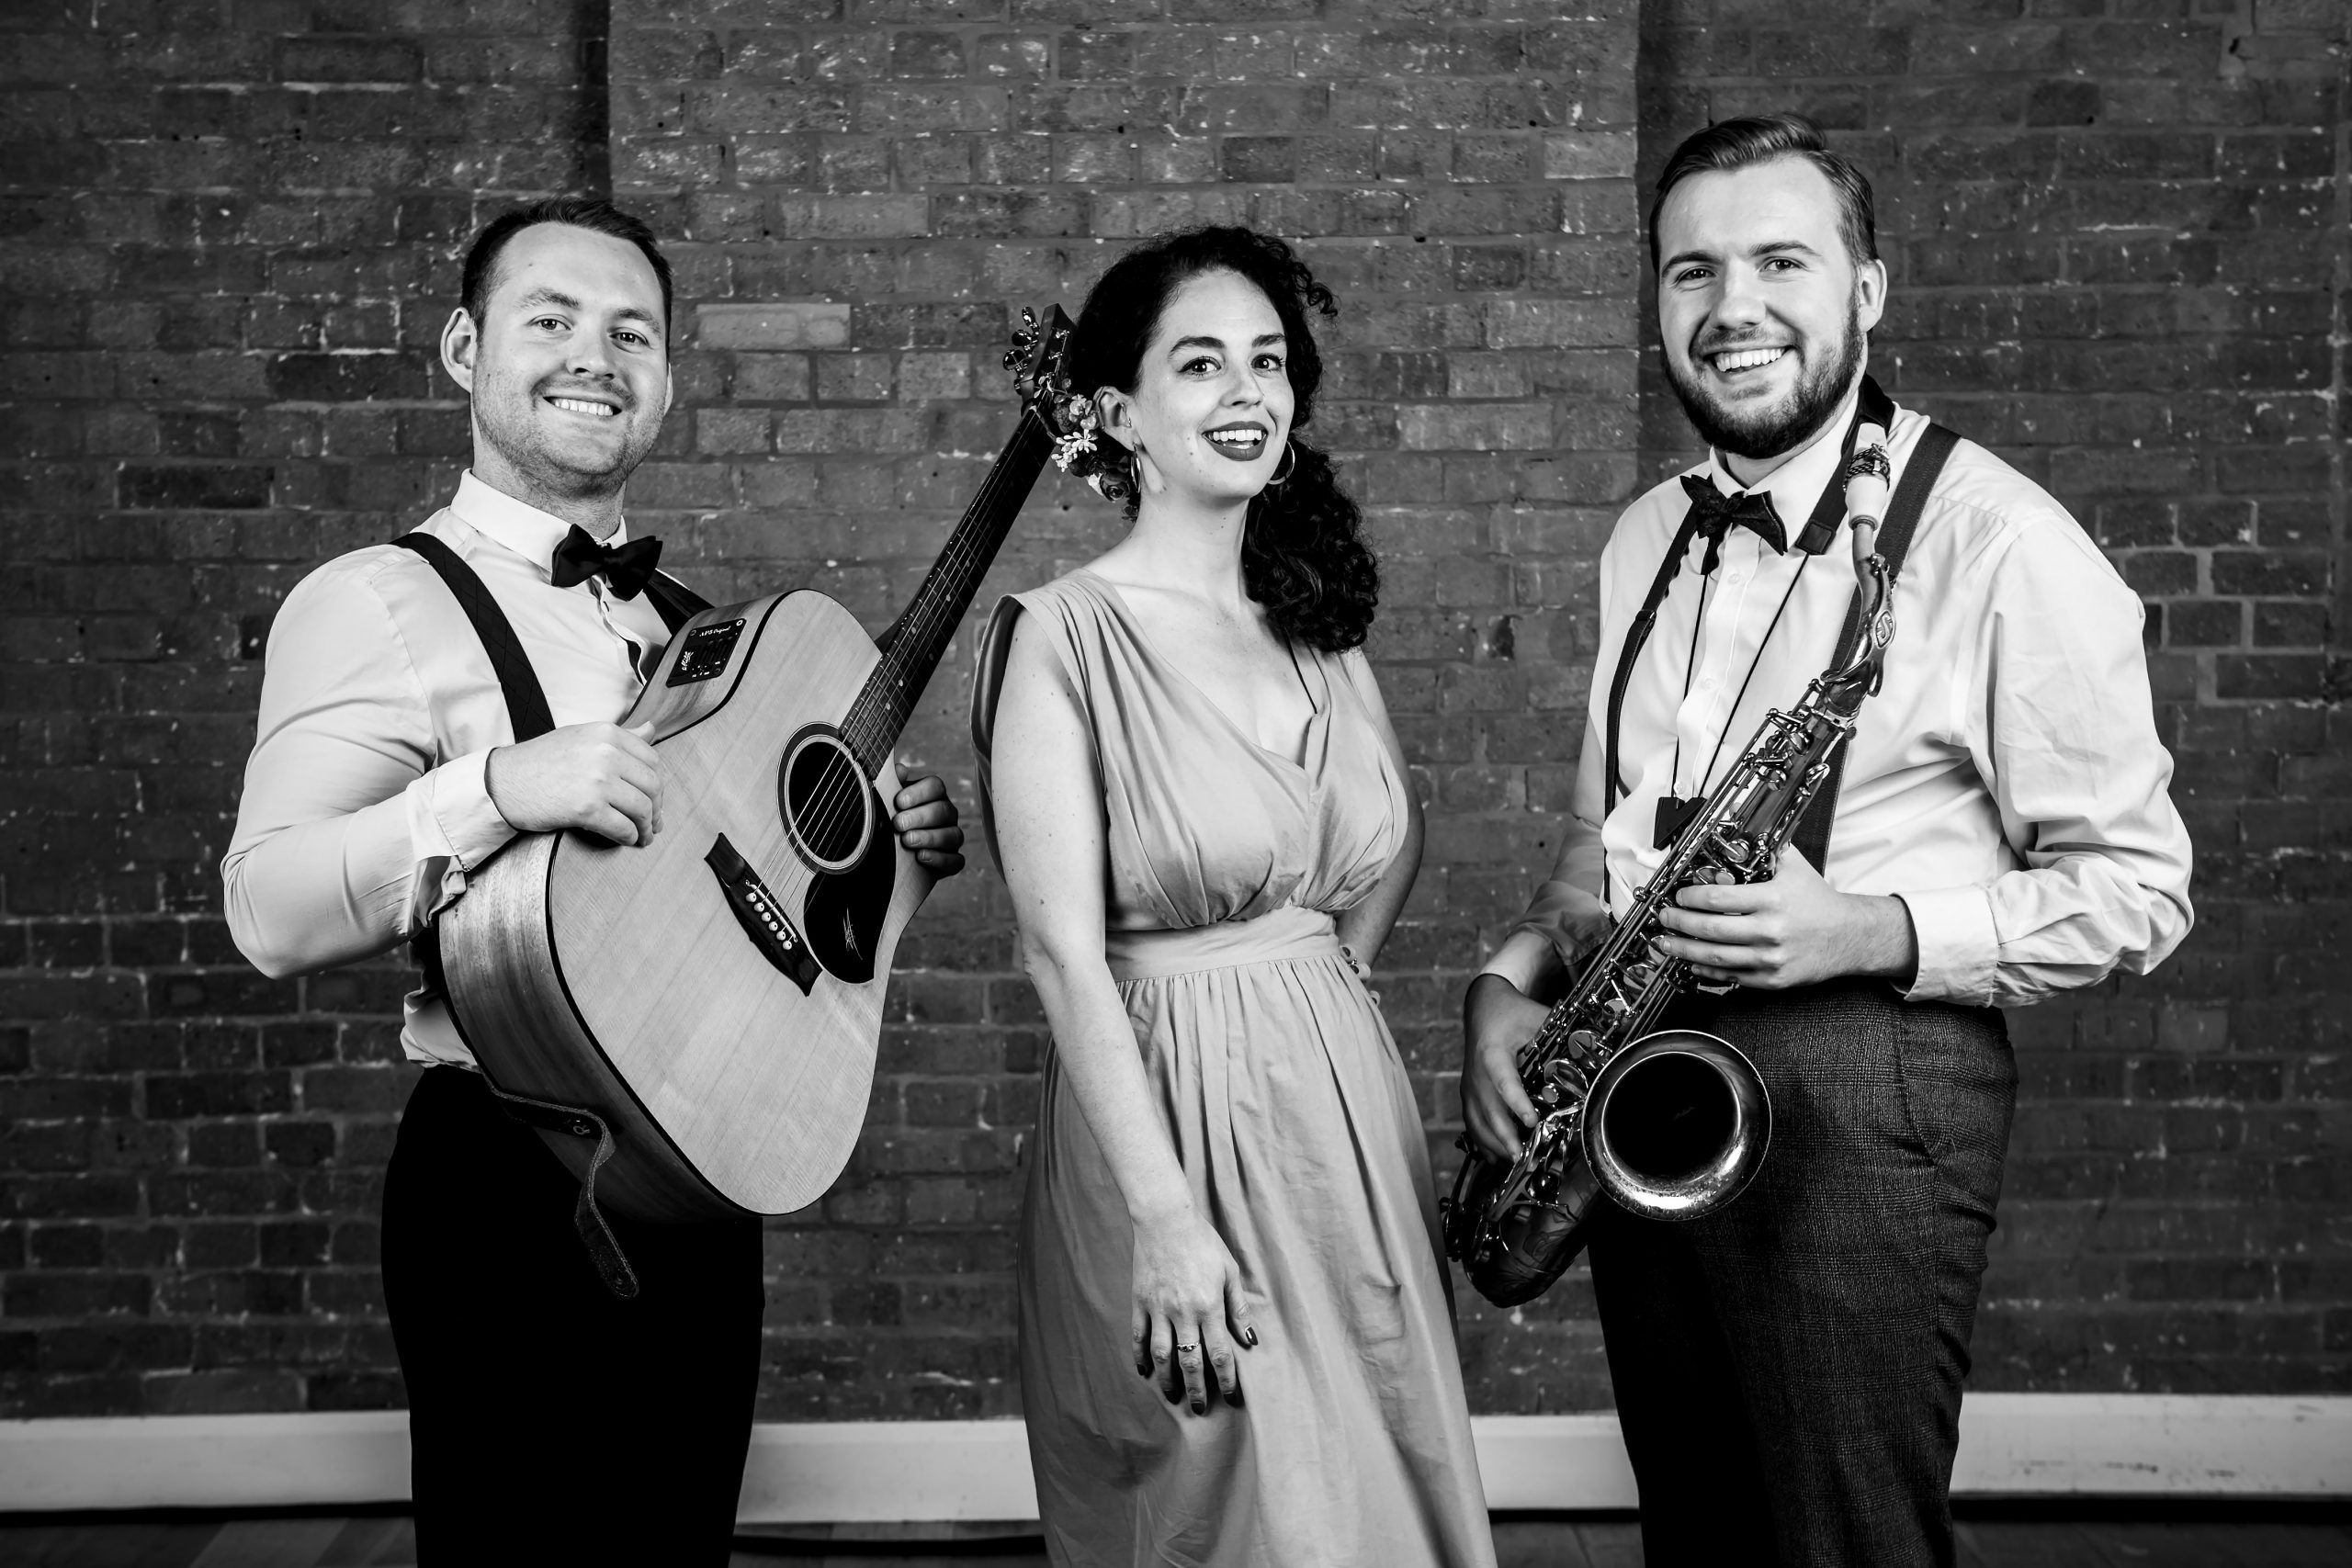 Roaming jazz band black and white photo of guitarist, female singer and saxophonist